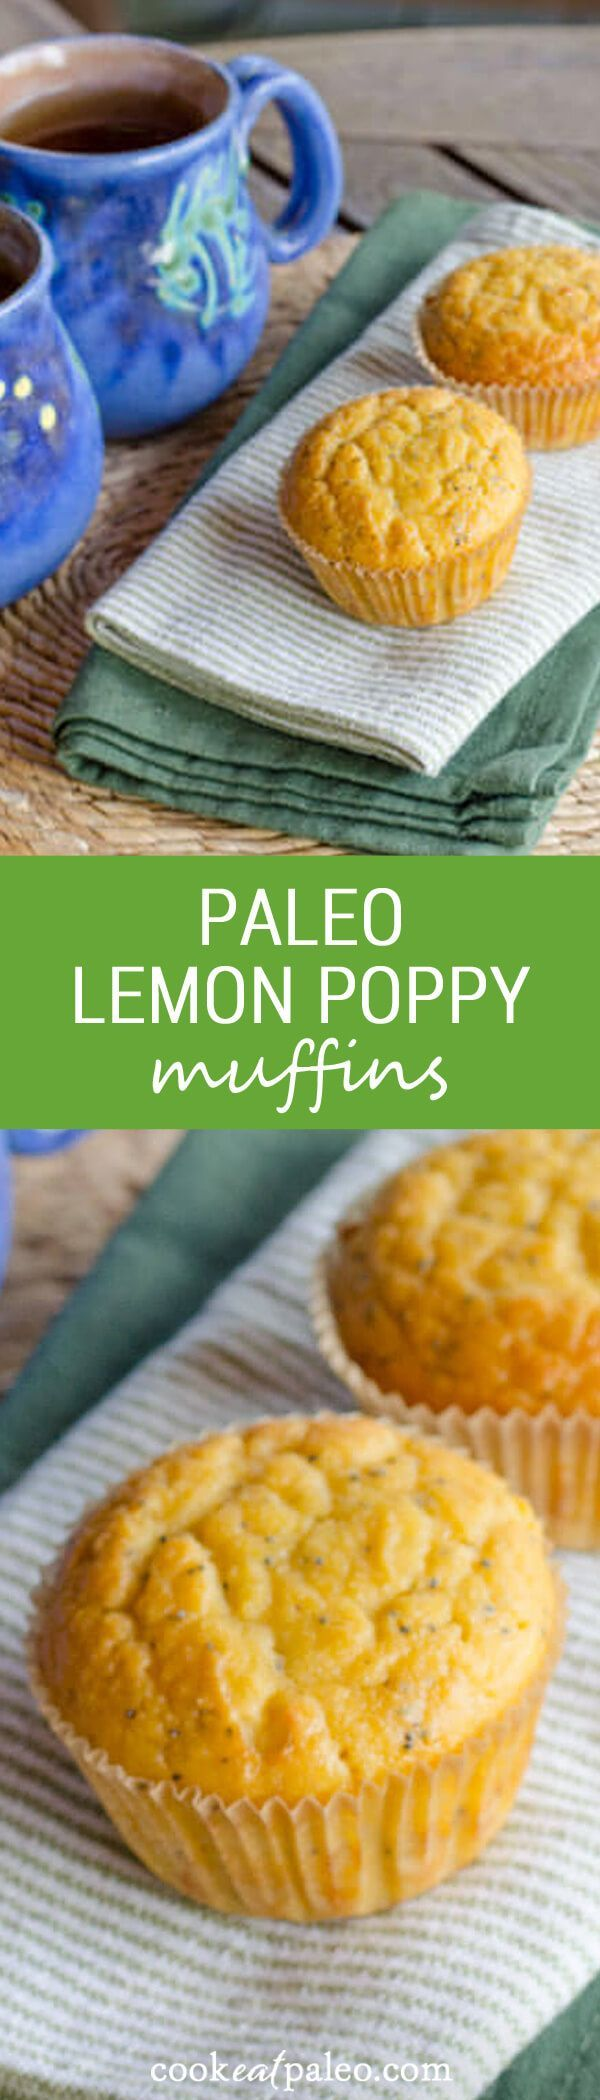 Poppy Paleo Muffins Lemon poppy paleo muffins are quick and easy gluten-free recipe. Just add everything to the food processor — the batter is ready in about five minutes.Lemon poppy paleo muffins are quick and easy gluten-free recipe. Just add everything to the food processor — the batter is ready in about five minutes.